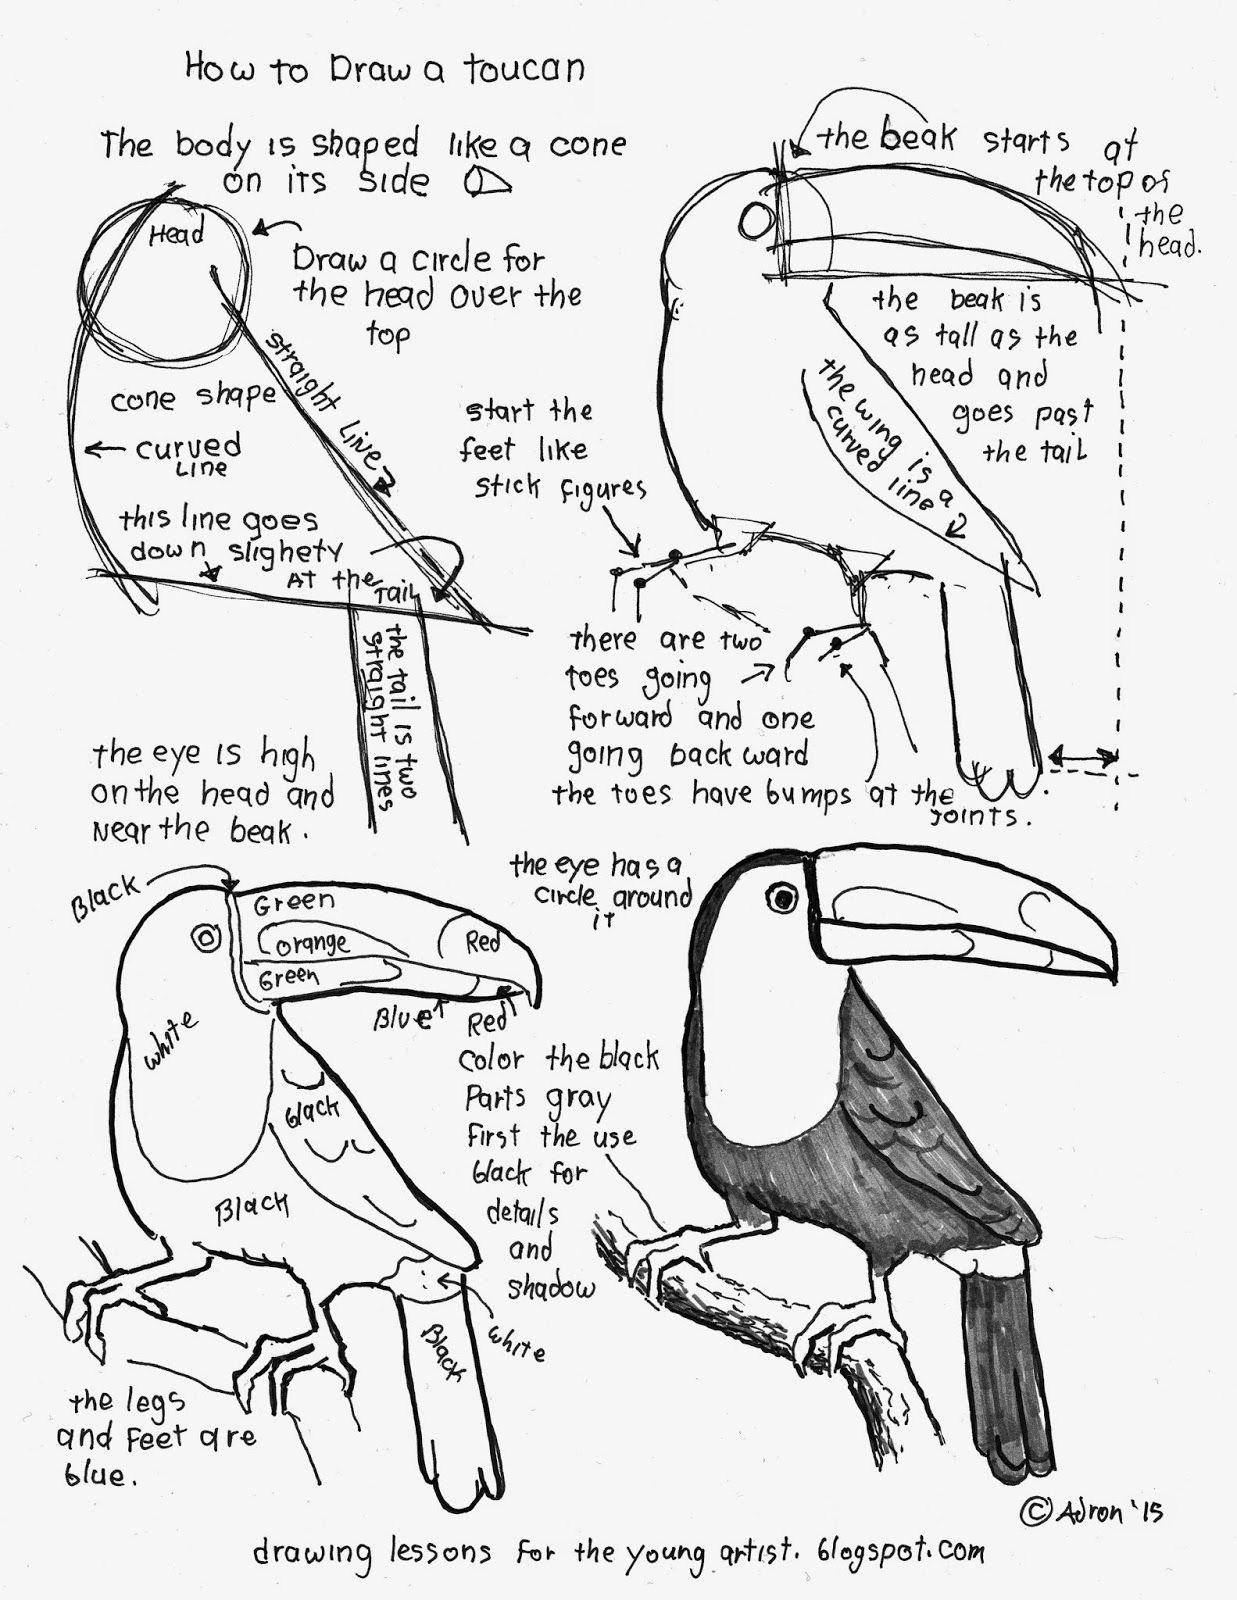 How To Draw A Toucan Bird, Free Printable Worksheet